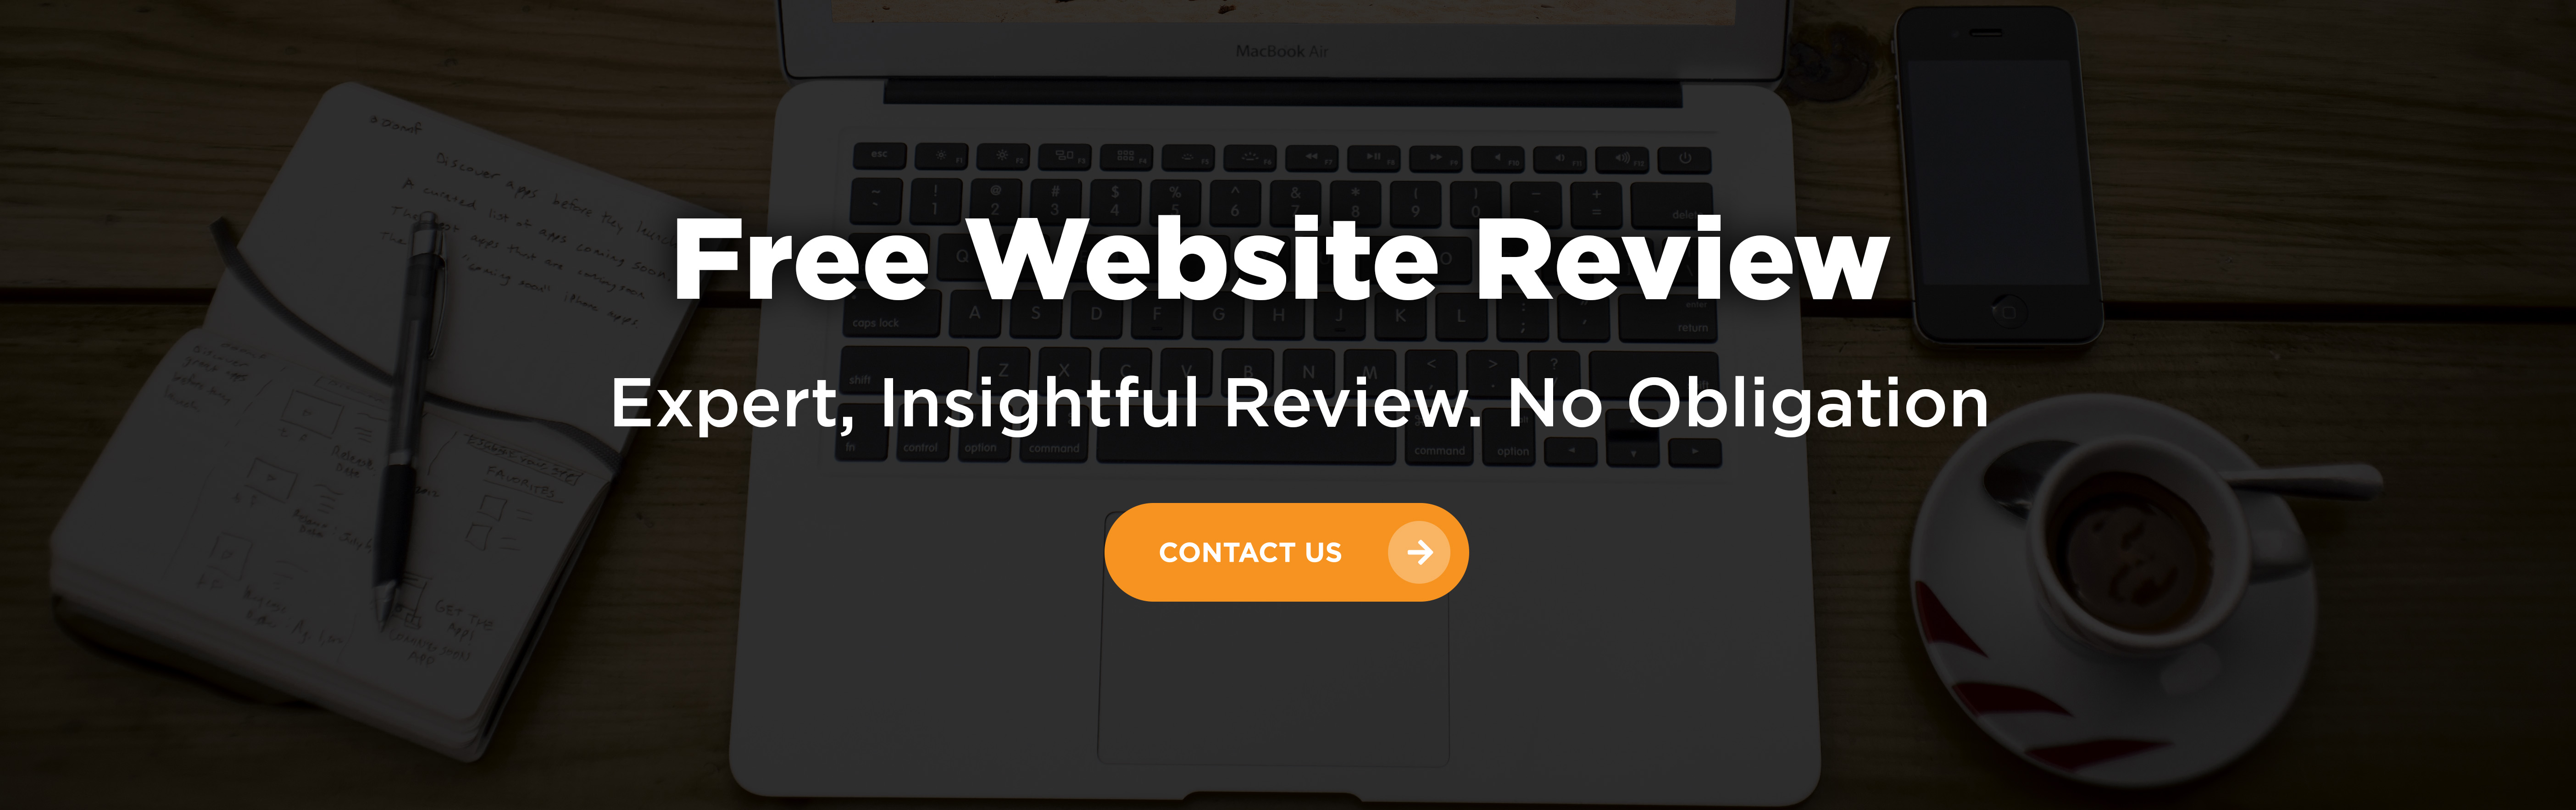 Free Website Review - Contact Us Today